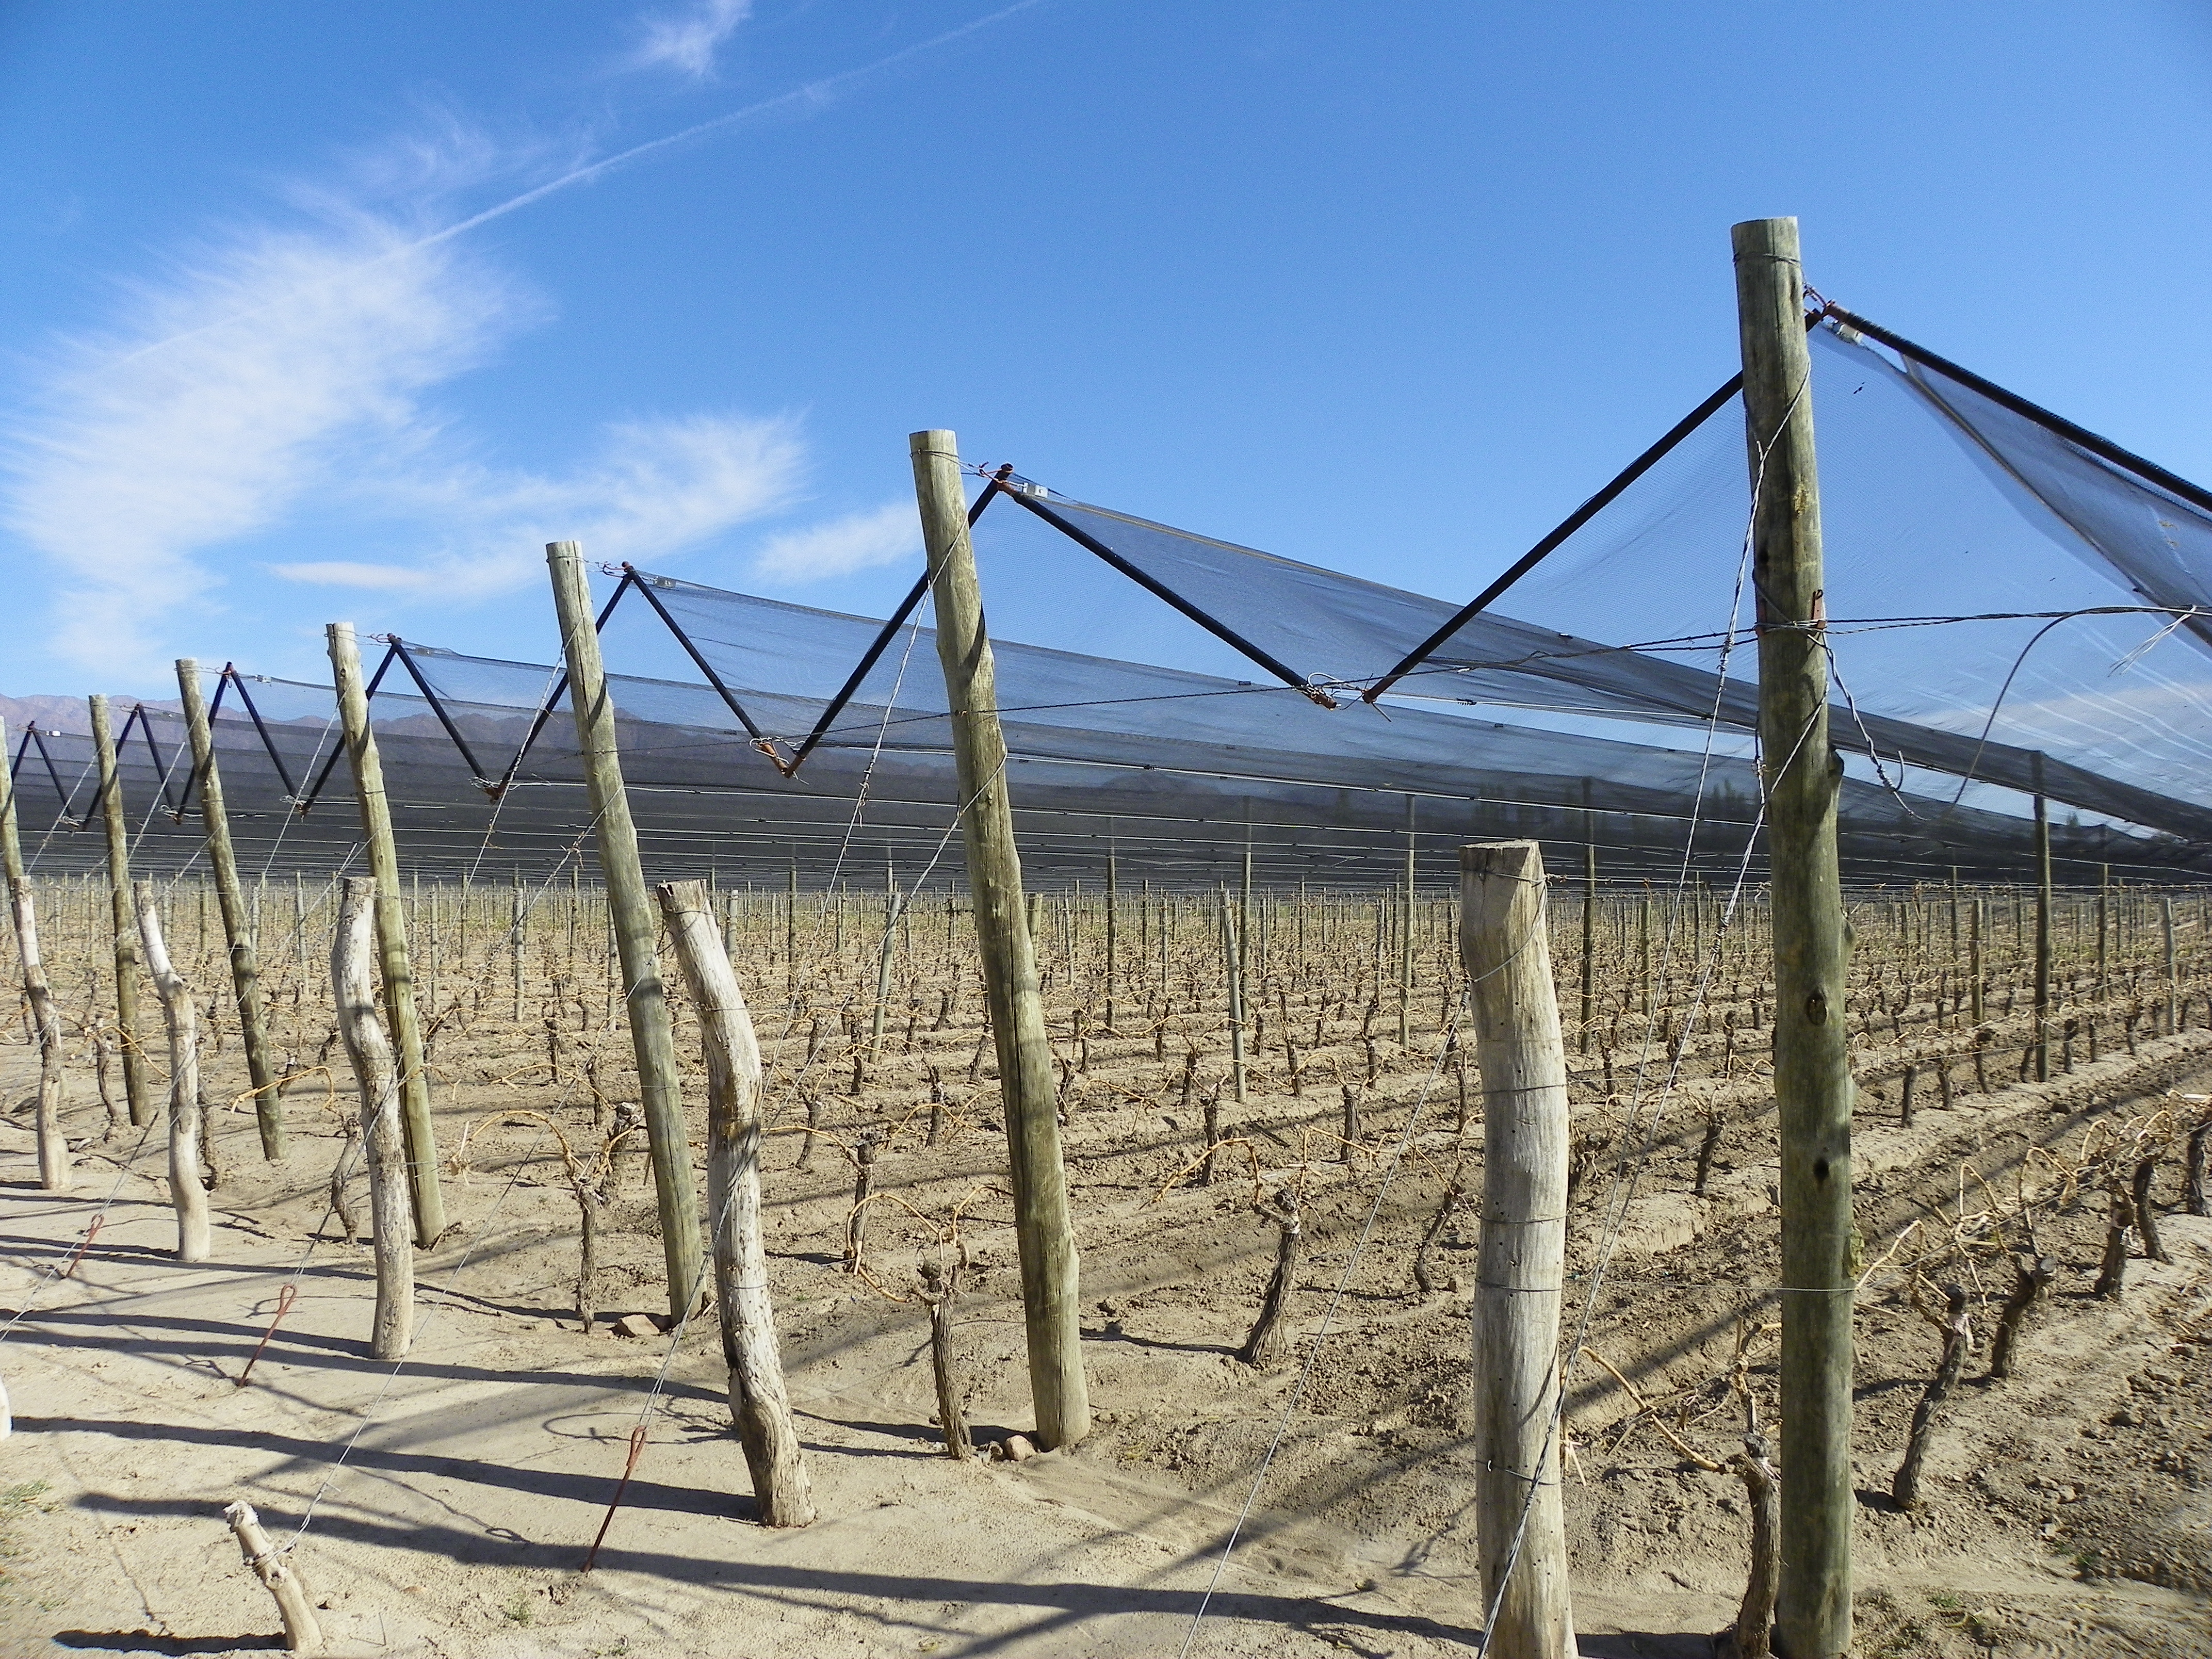 Going Coastal: Chilean Winemakers Pursue a Cooling Trend